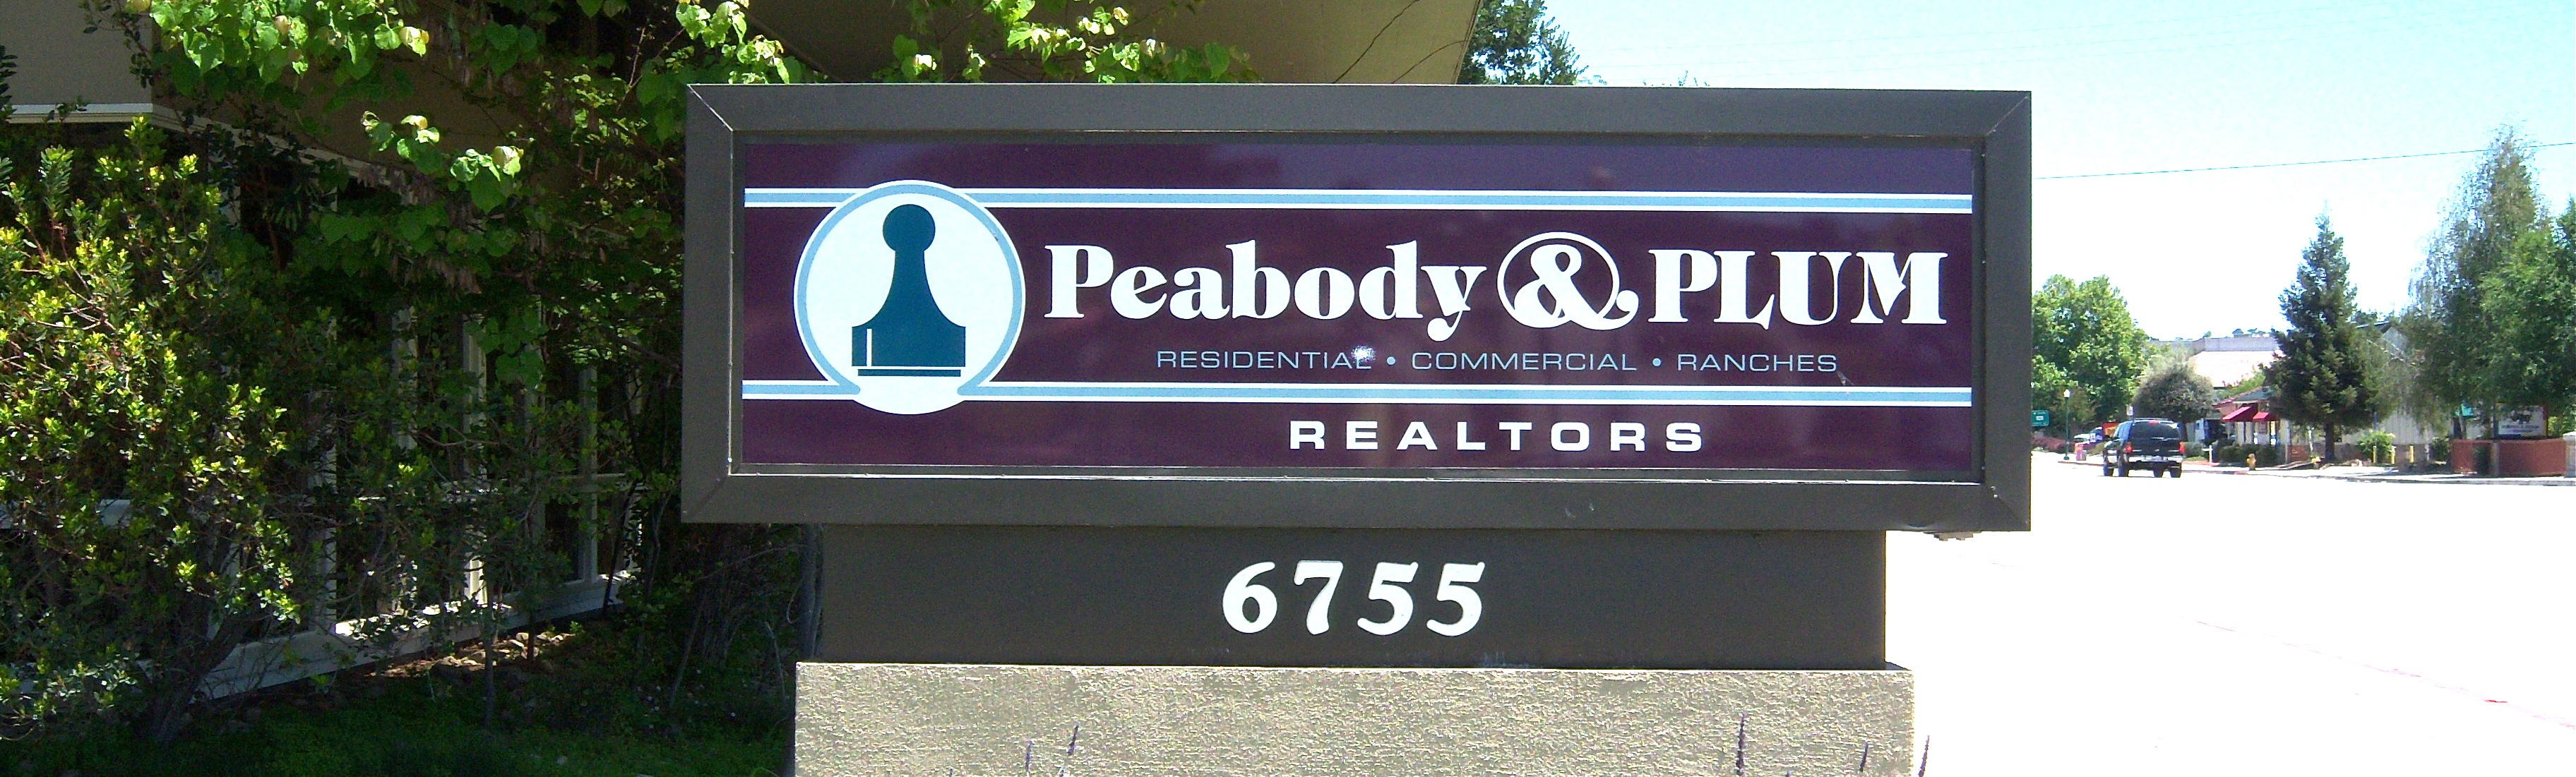 Peabody-and-Plum-1920x580